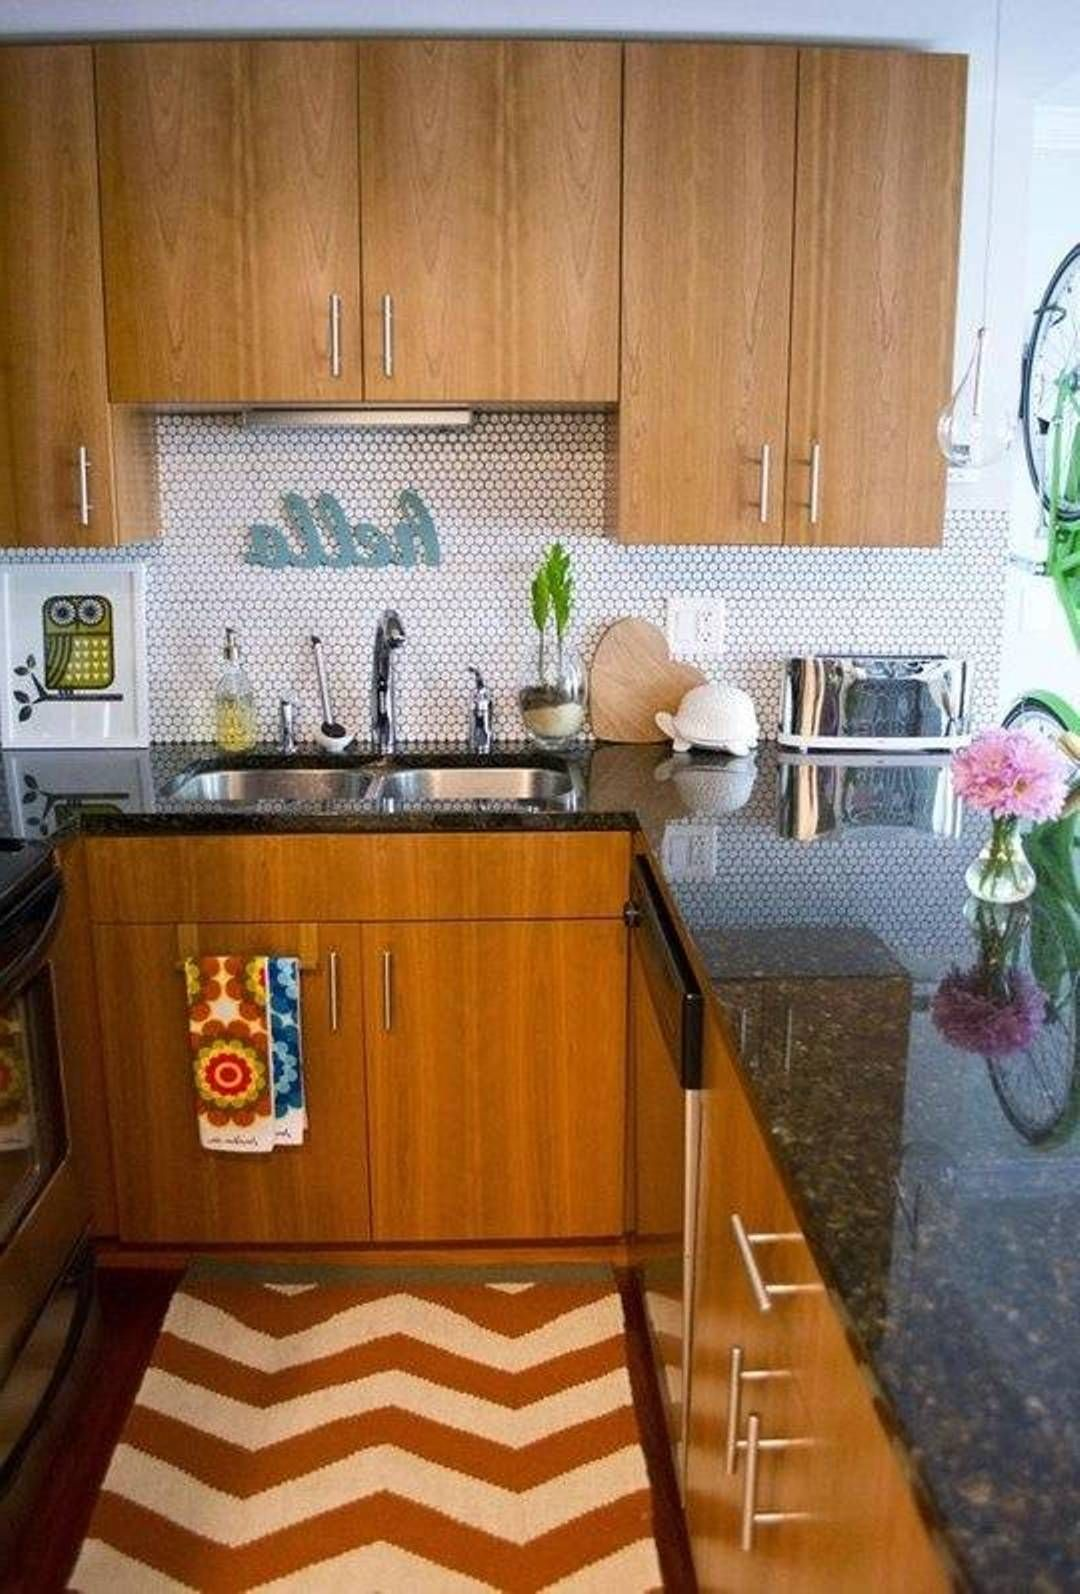 Marvelous Small Apartment Kitchen Design Ideas Part - 13: Vintage Kitchen Designing Ideas With Dark Oramge And Light Orange Tribal  Pattern In Kitchen Rug Uploaded. Small Apartment ...